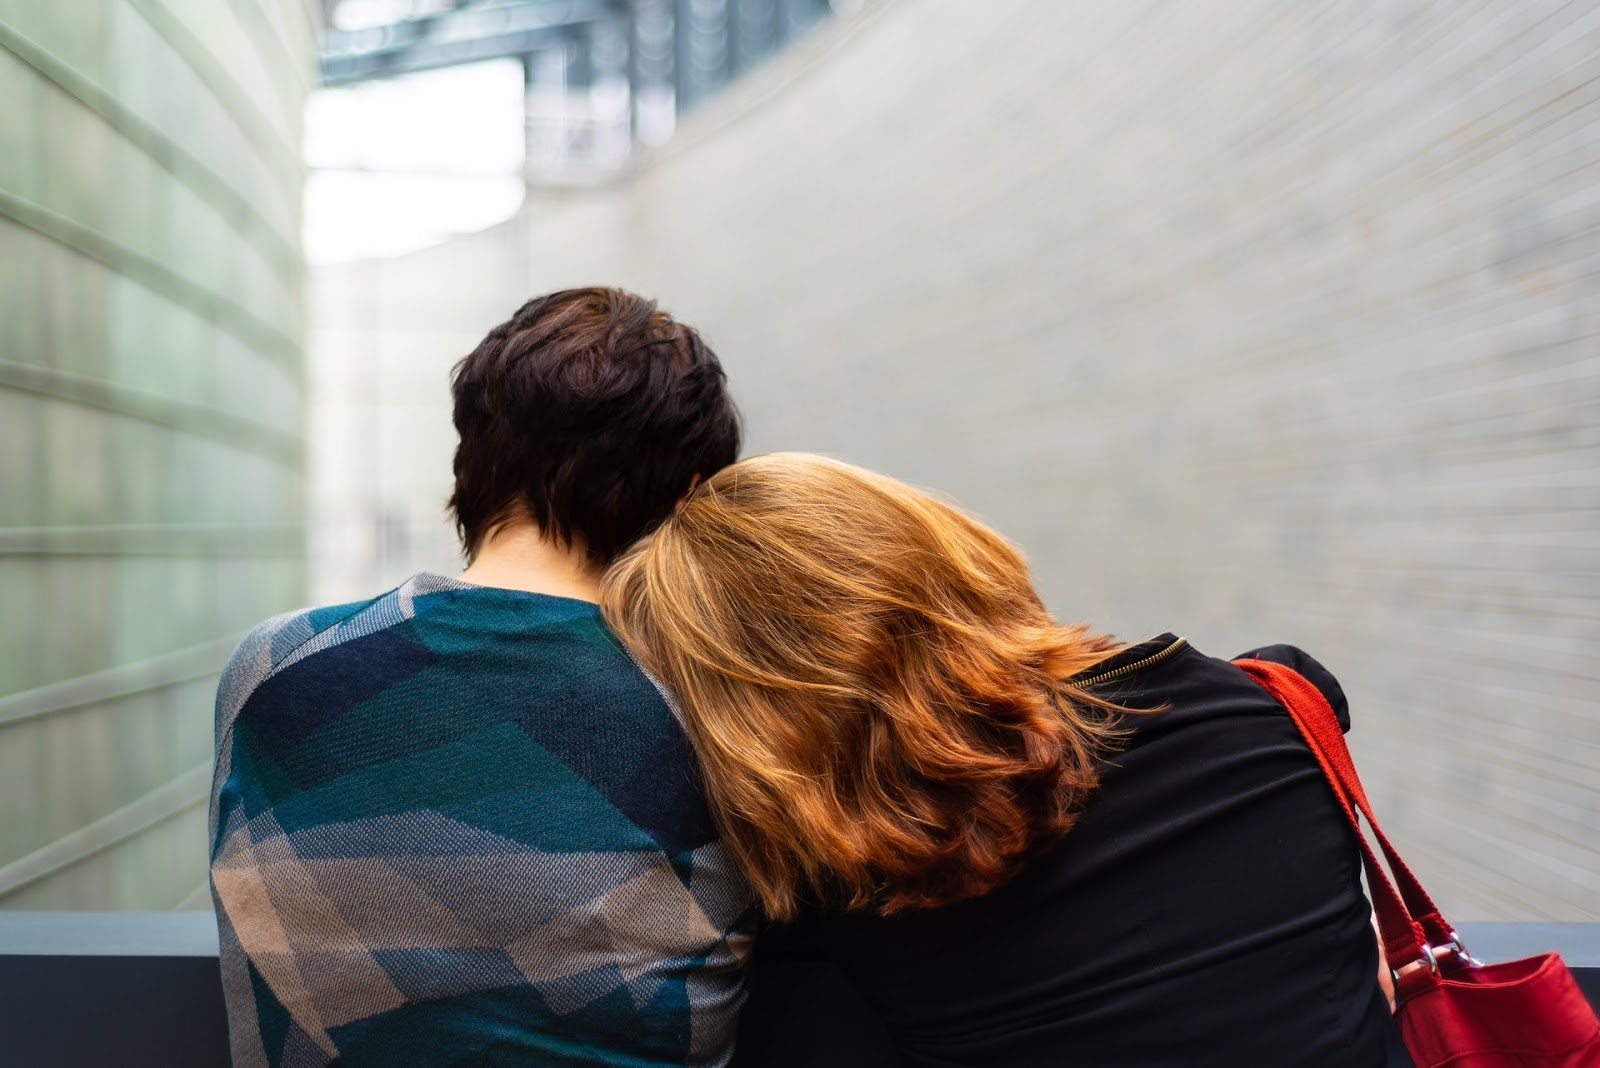 A woman with her head on another person's shoulder